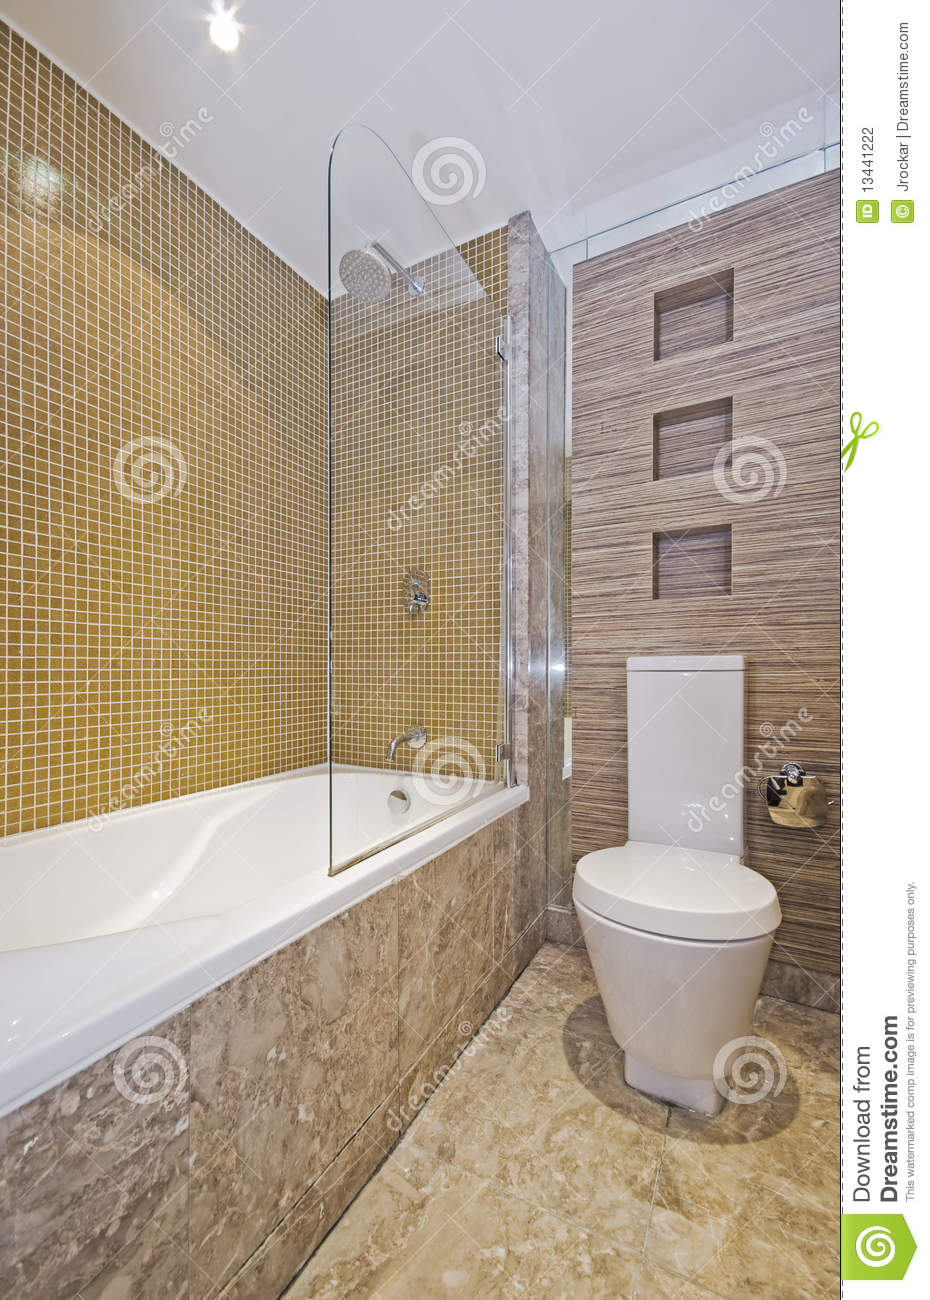 Bathroom With Mosaic Tiles Stock Photo Image Of Ceiling